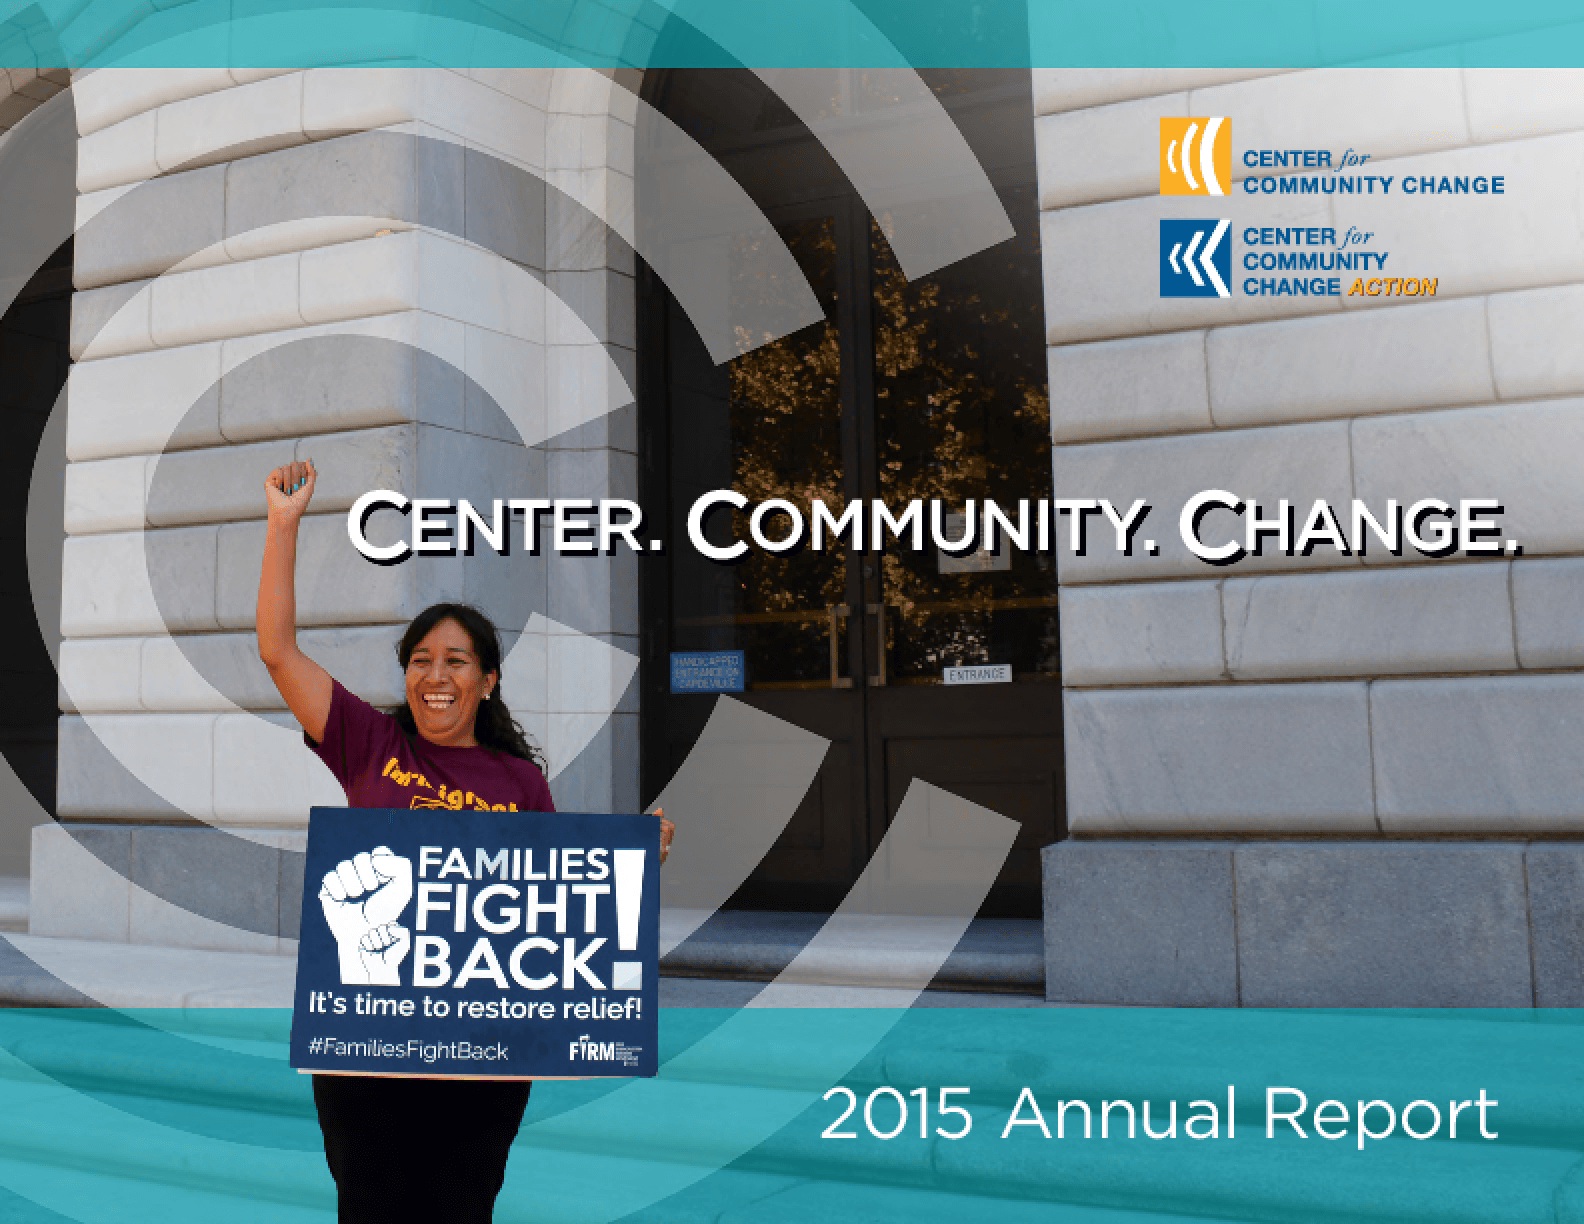 Center. Community. Change. 2015 Annual Report